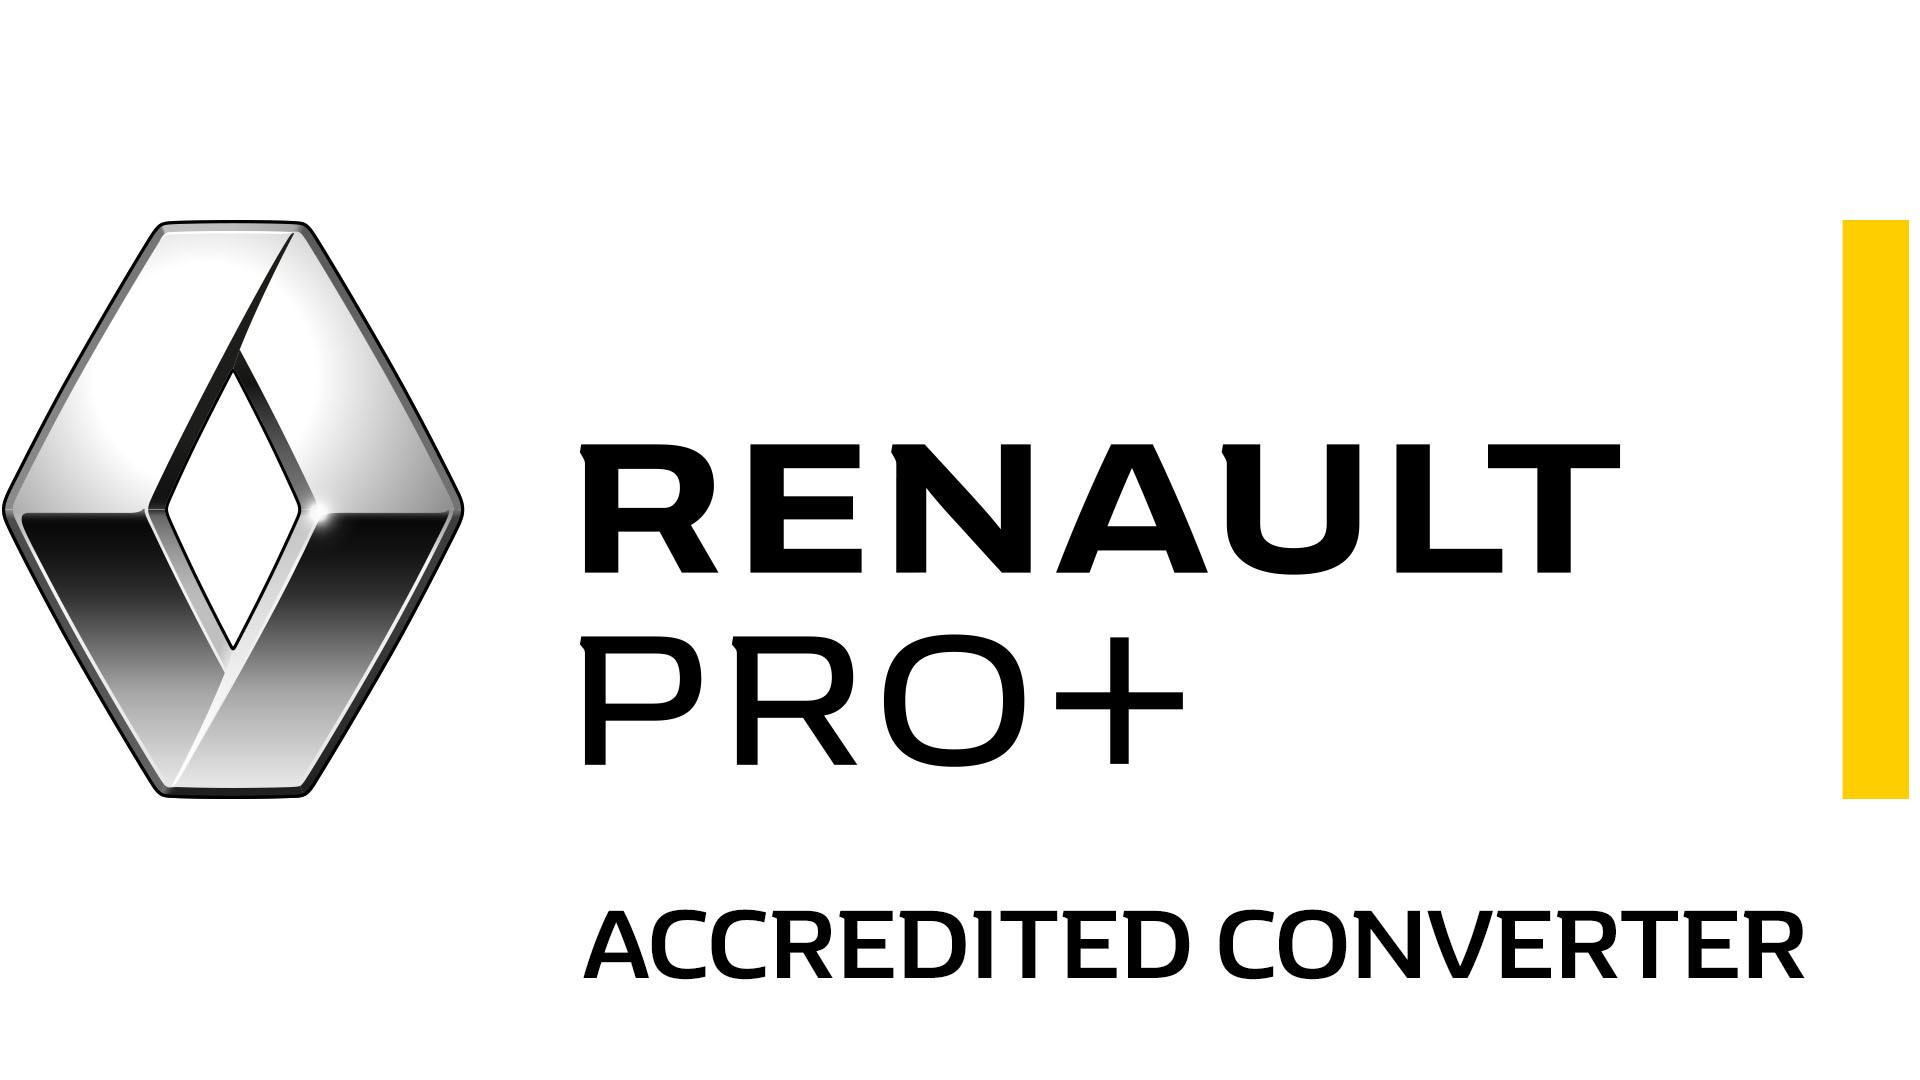 Renault accredited converter logo